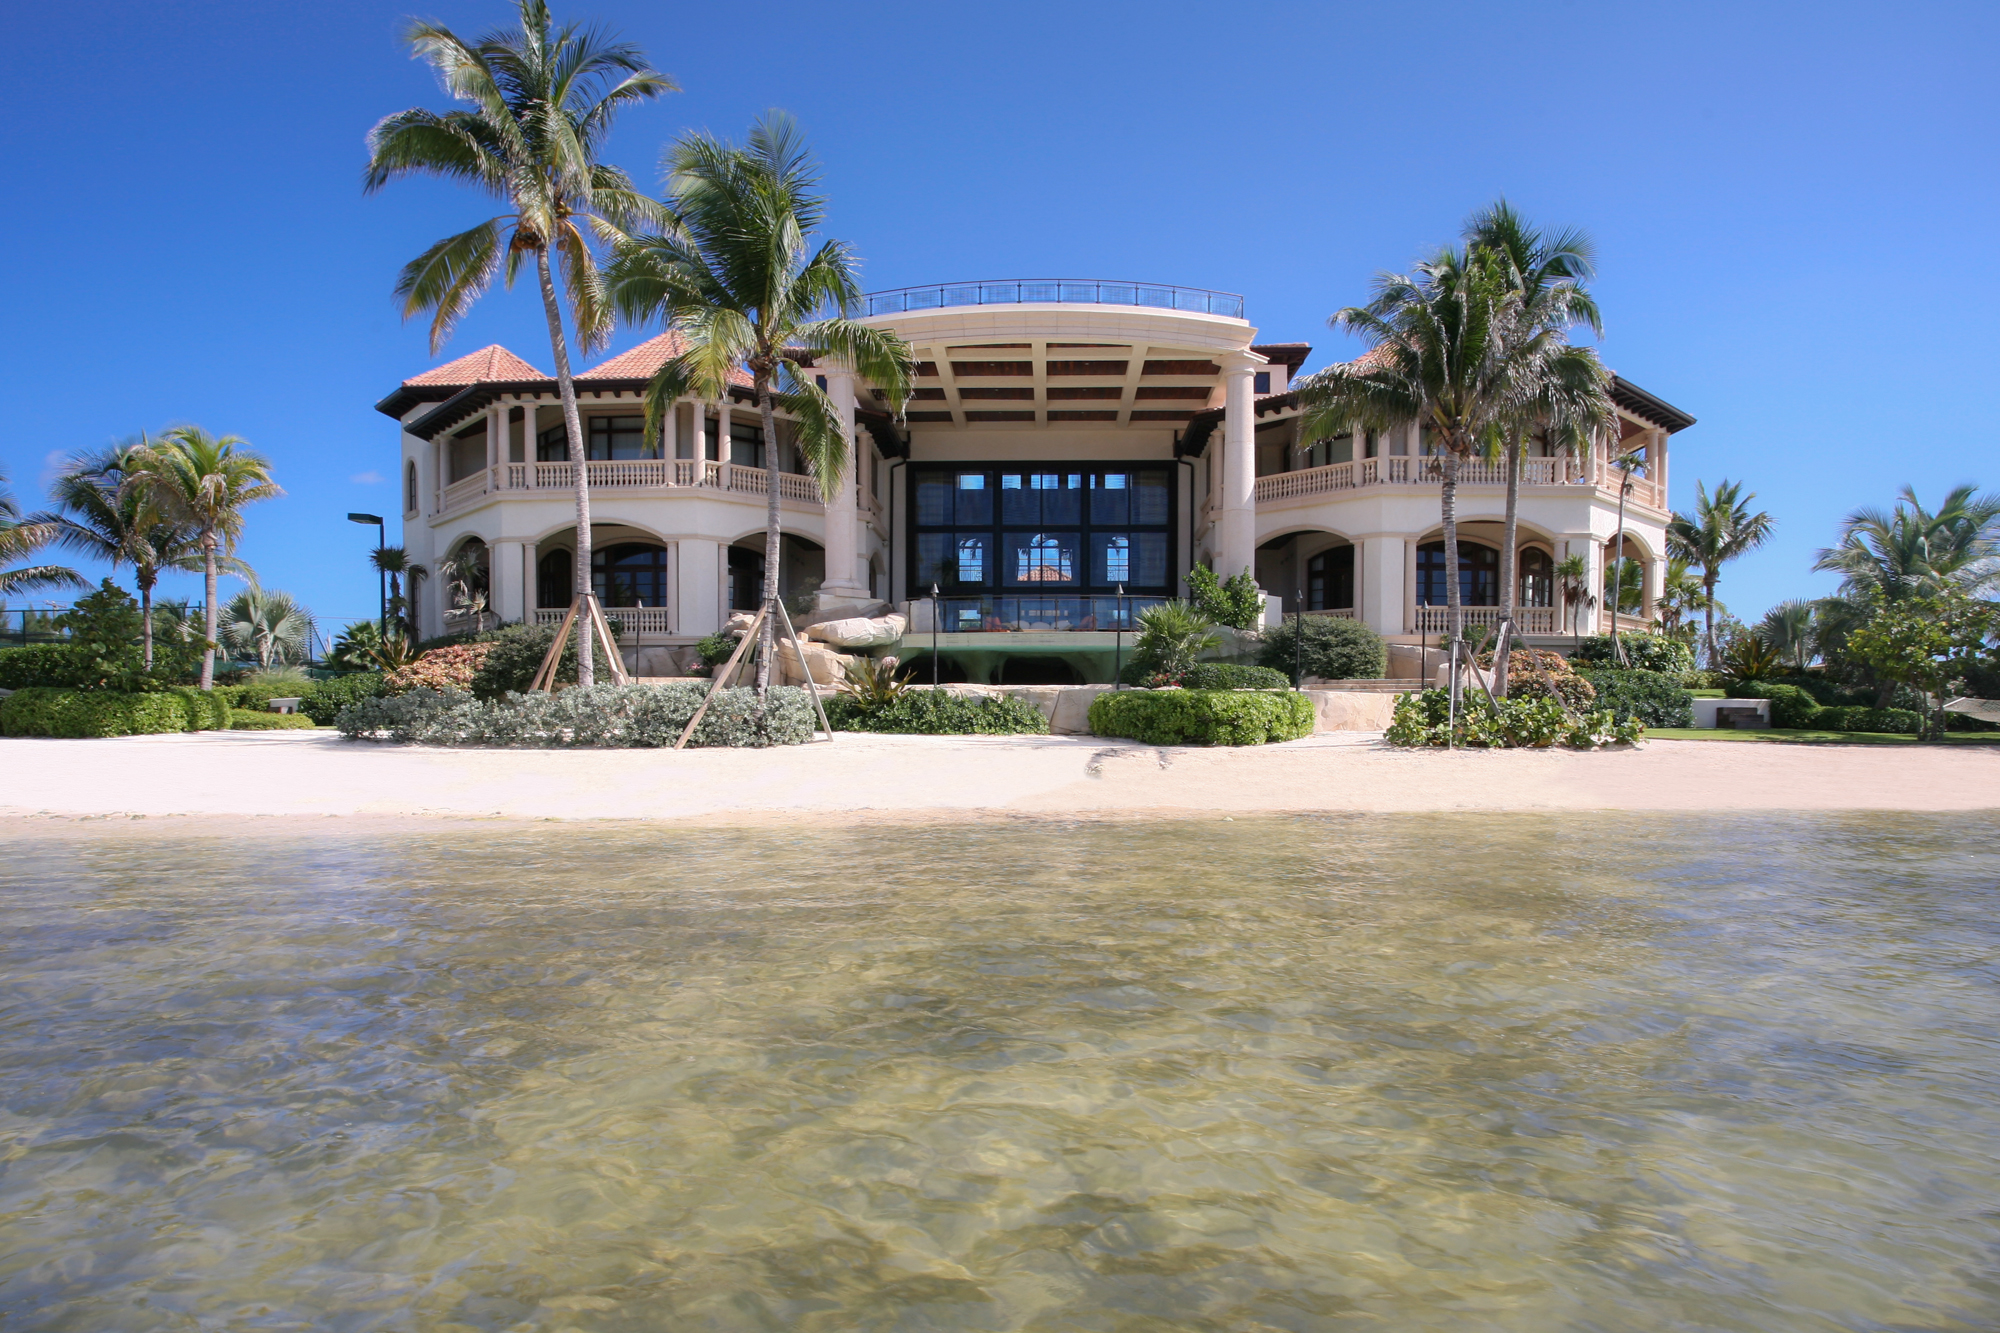 Property For Sale at Castillo Caribe, Caribbean luxury real estate